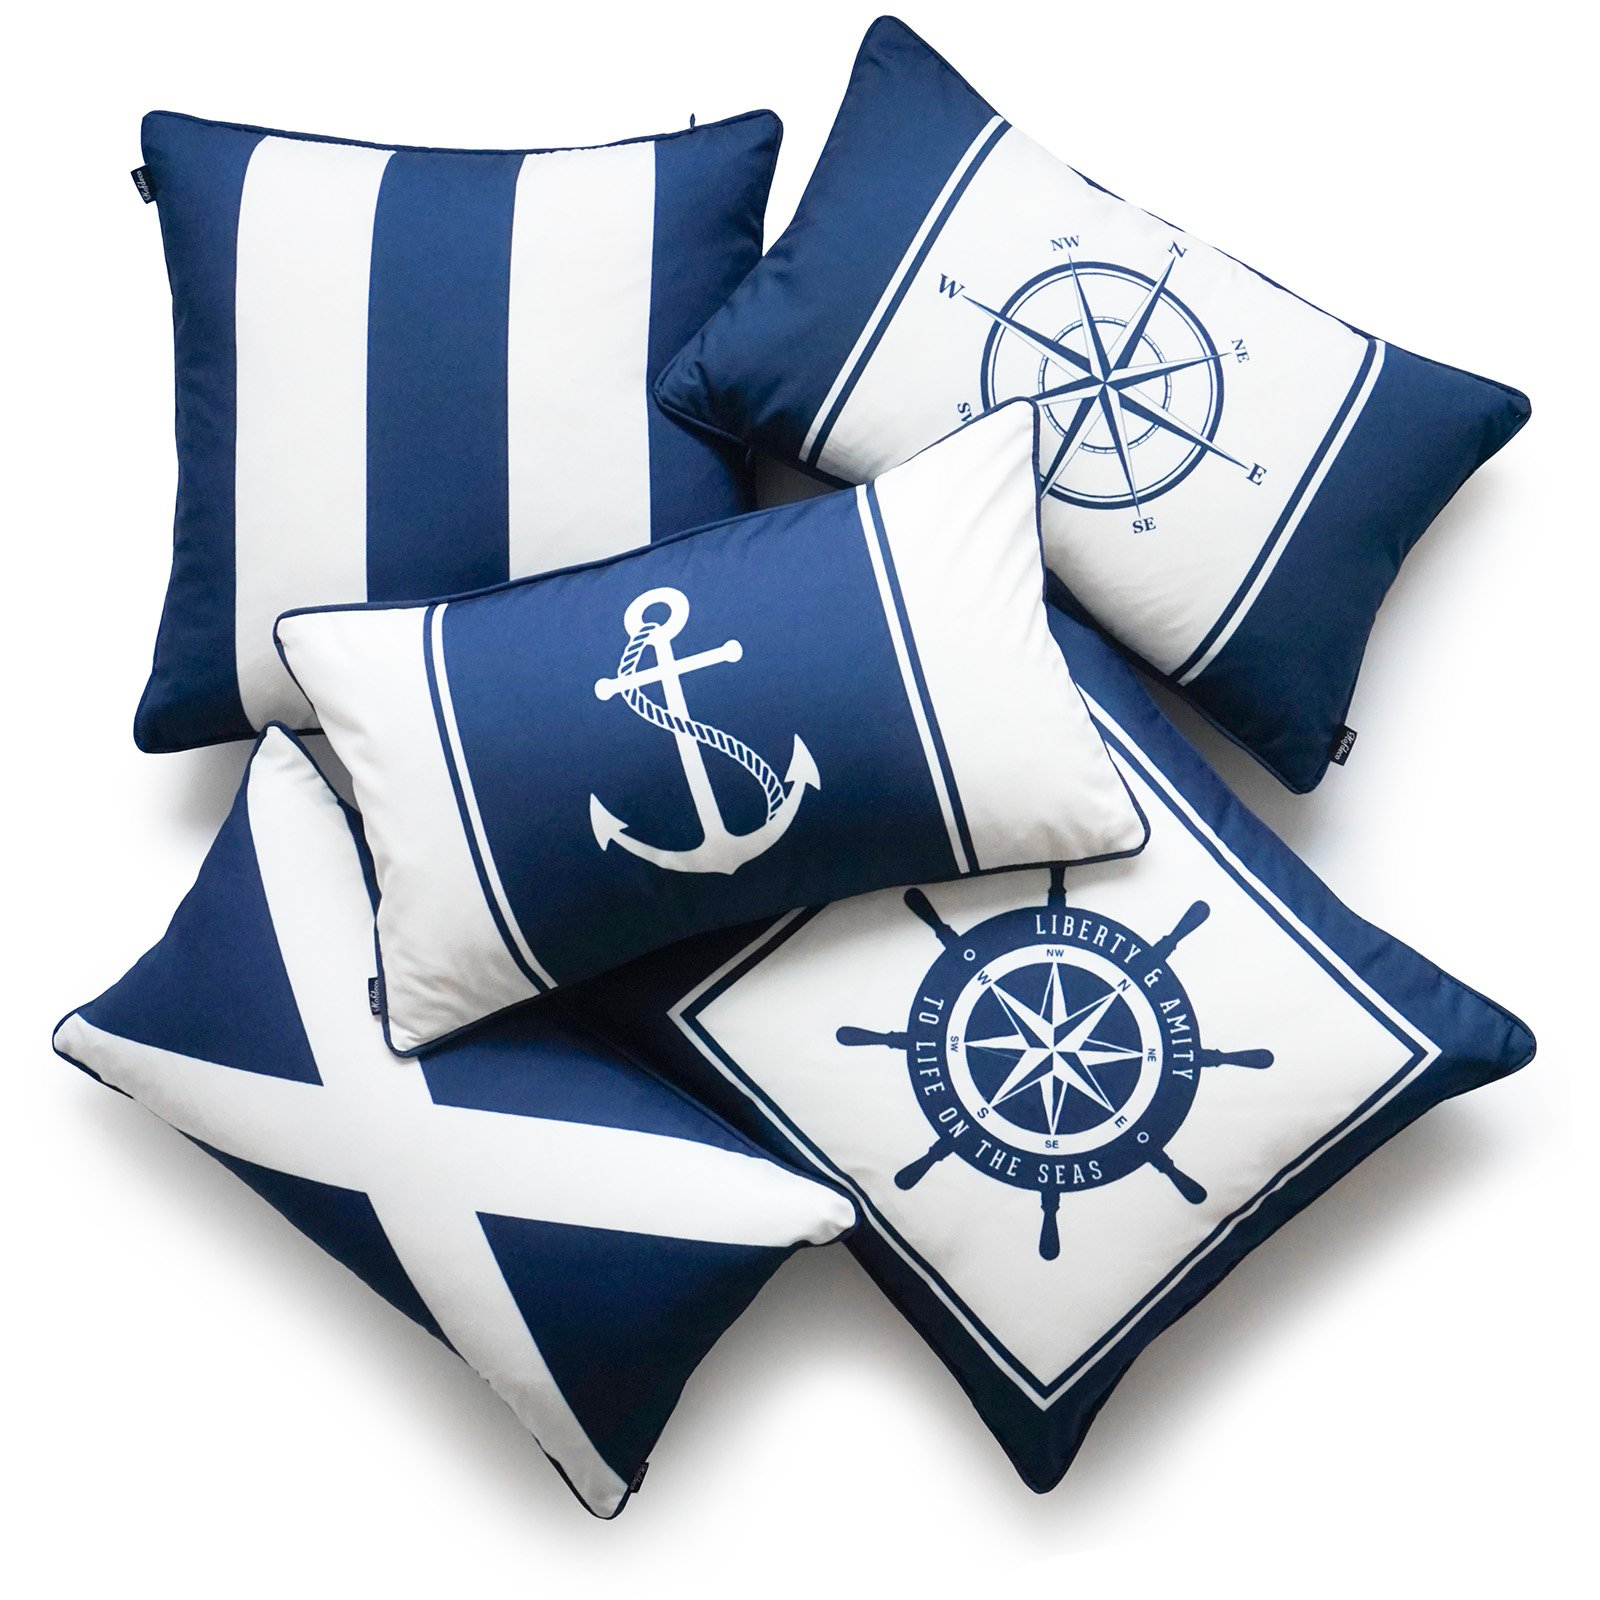 Hofdeco Nautical Indoor Outdoor Pillow Cover ONLY, Water Resistant for Patio Lounge Sofa, Navy Blue Wheel Flag Anchor Compass Stripes, 18''x18'' 12''x20'', Set of 5